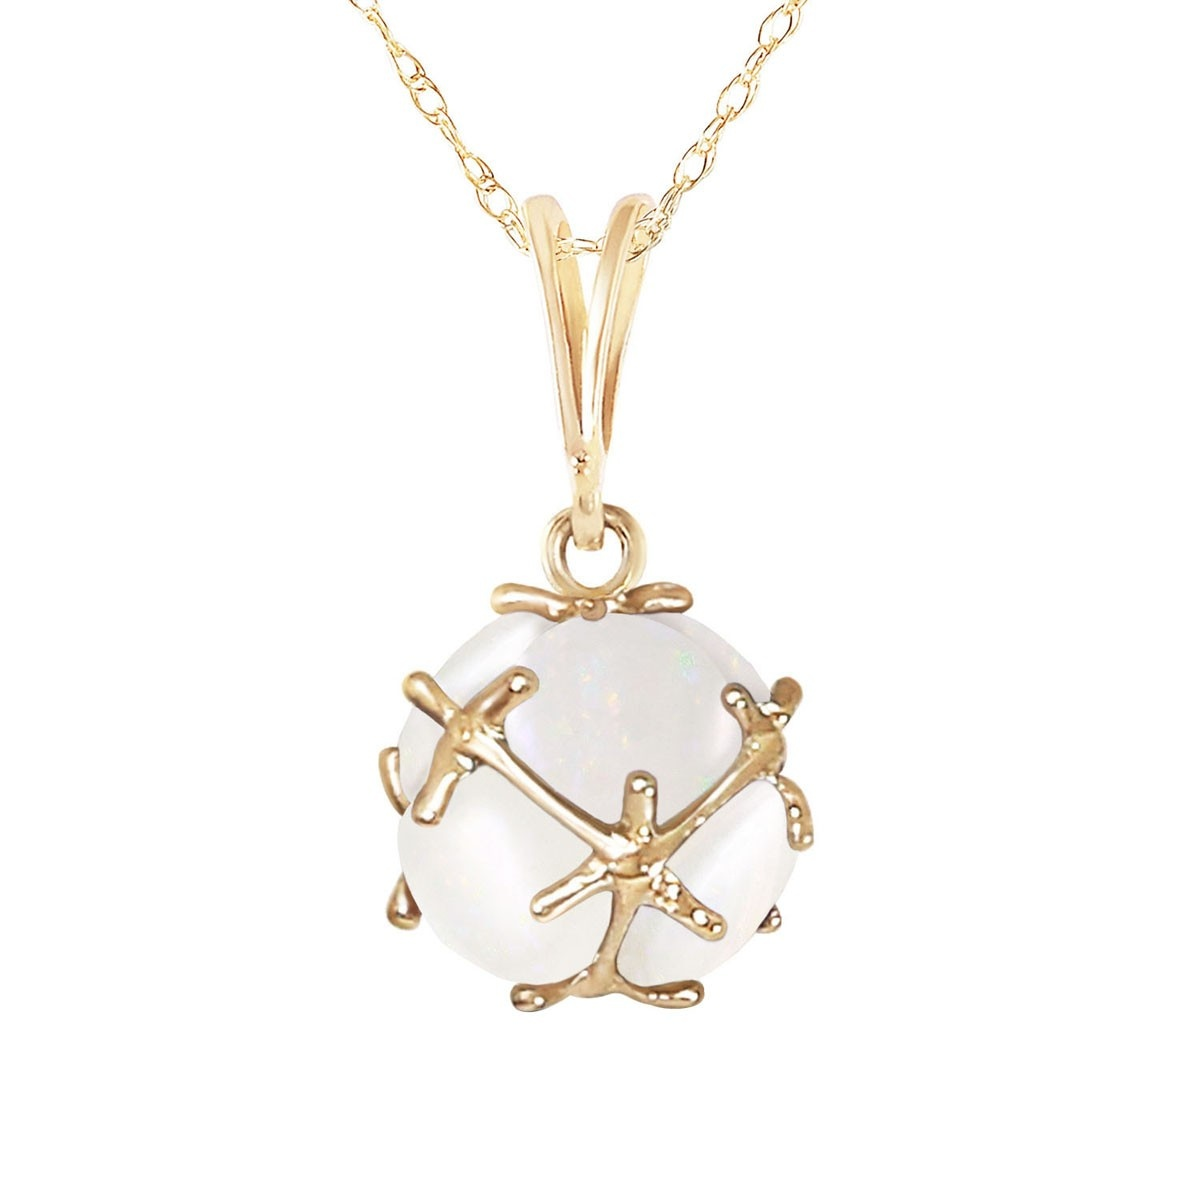 Opal Infinity Stone Pendant Necklace 2 ctw in 9ct Gold